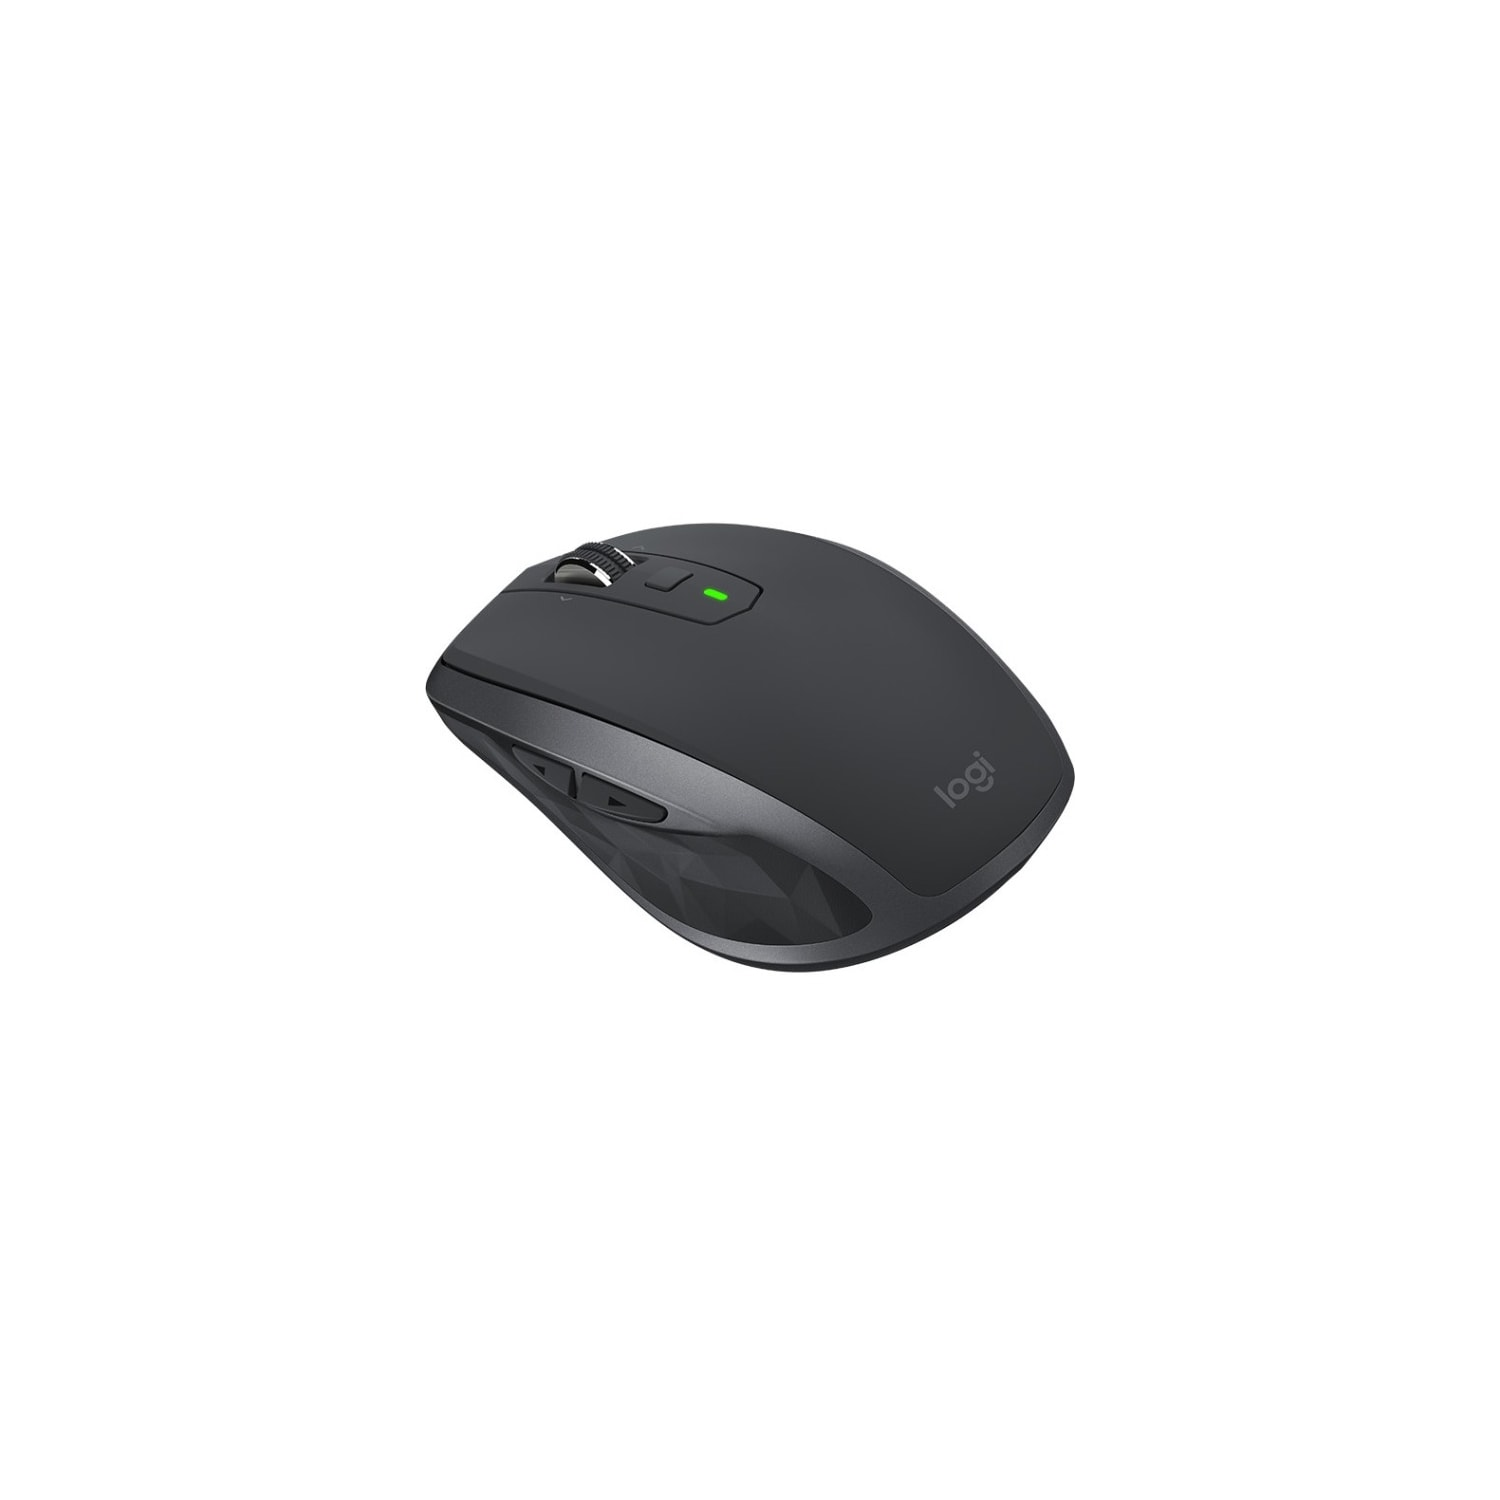 Logitech MX Anywhere 2S Mouse - Bluetooth/Radio Frequency - USB - Darkfield  - 7 Button(s) - Graphite